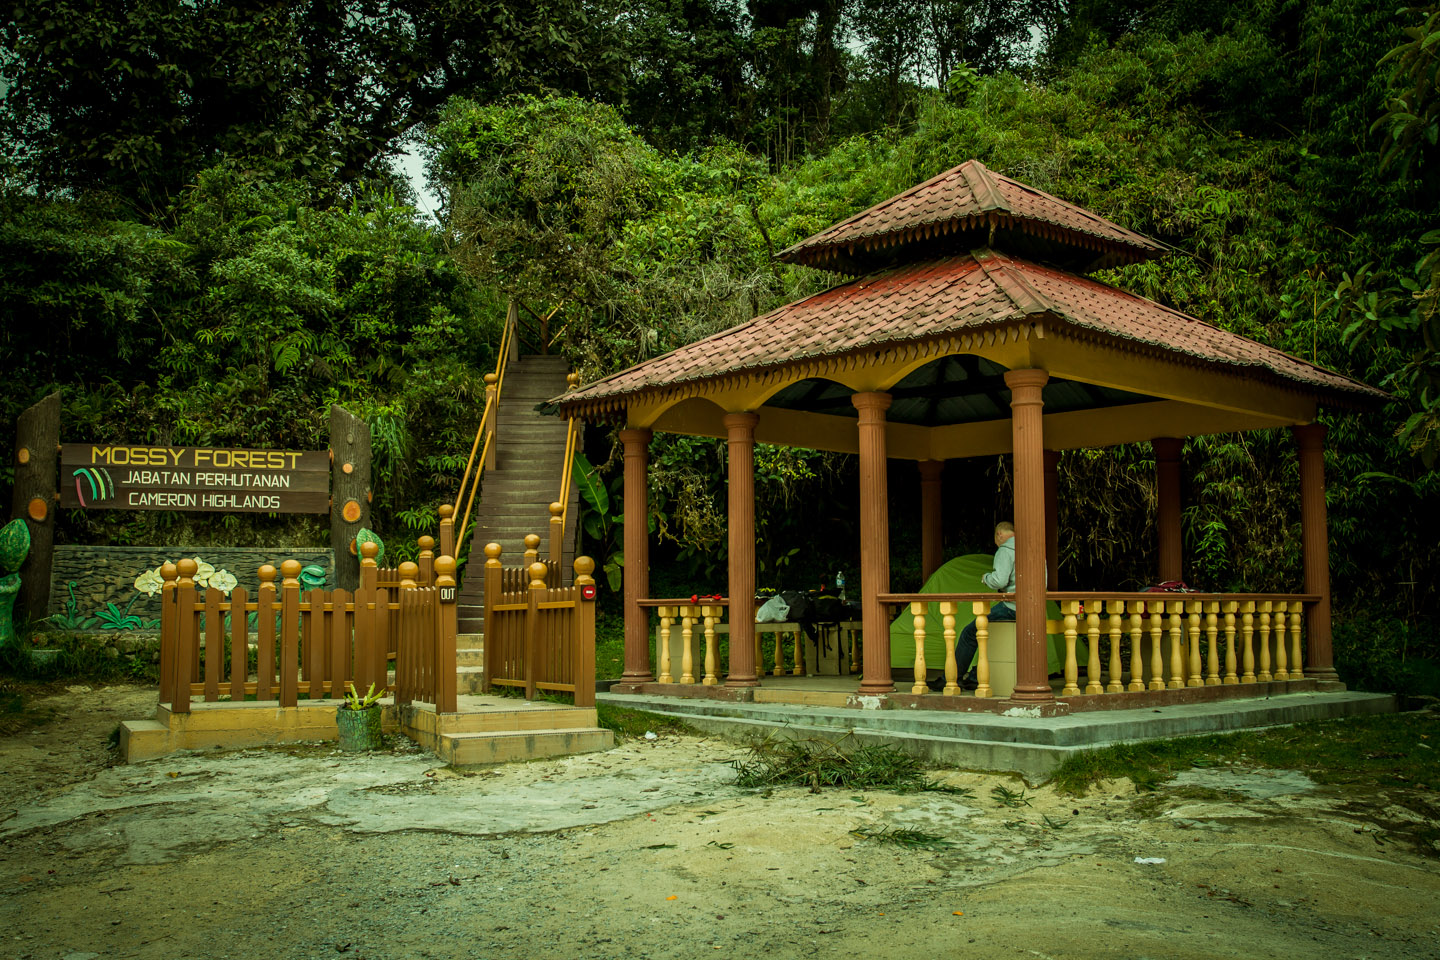 Entrance to the Mossy Forest Mount Gunung Batu Brinchang with little shelter refuge house camp site, camping ground